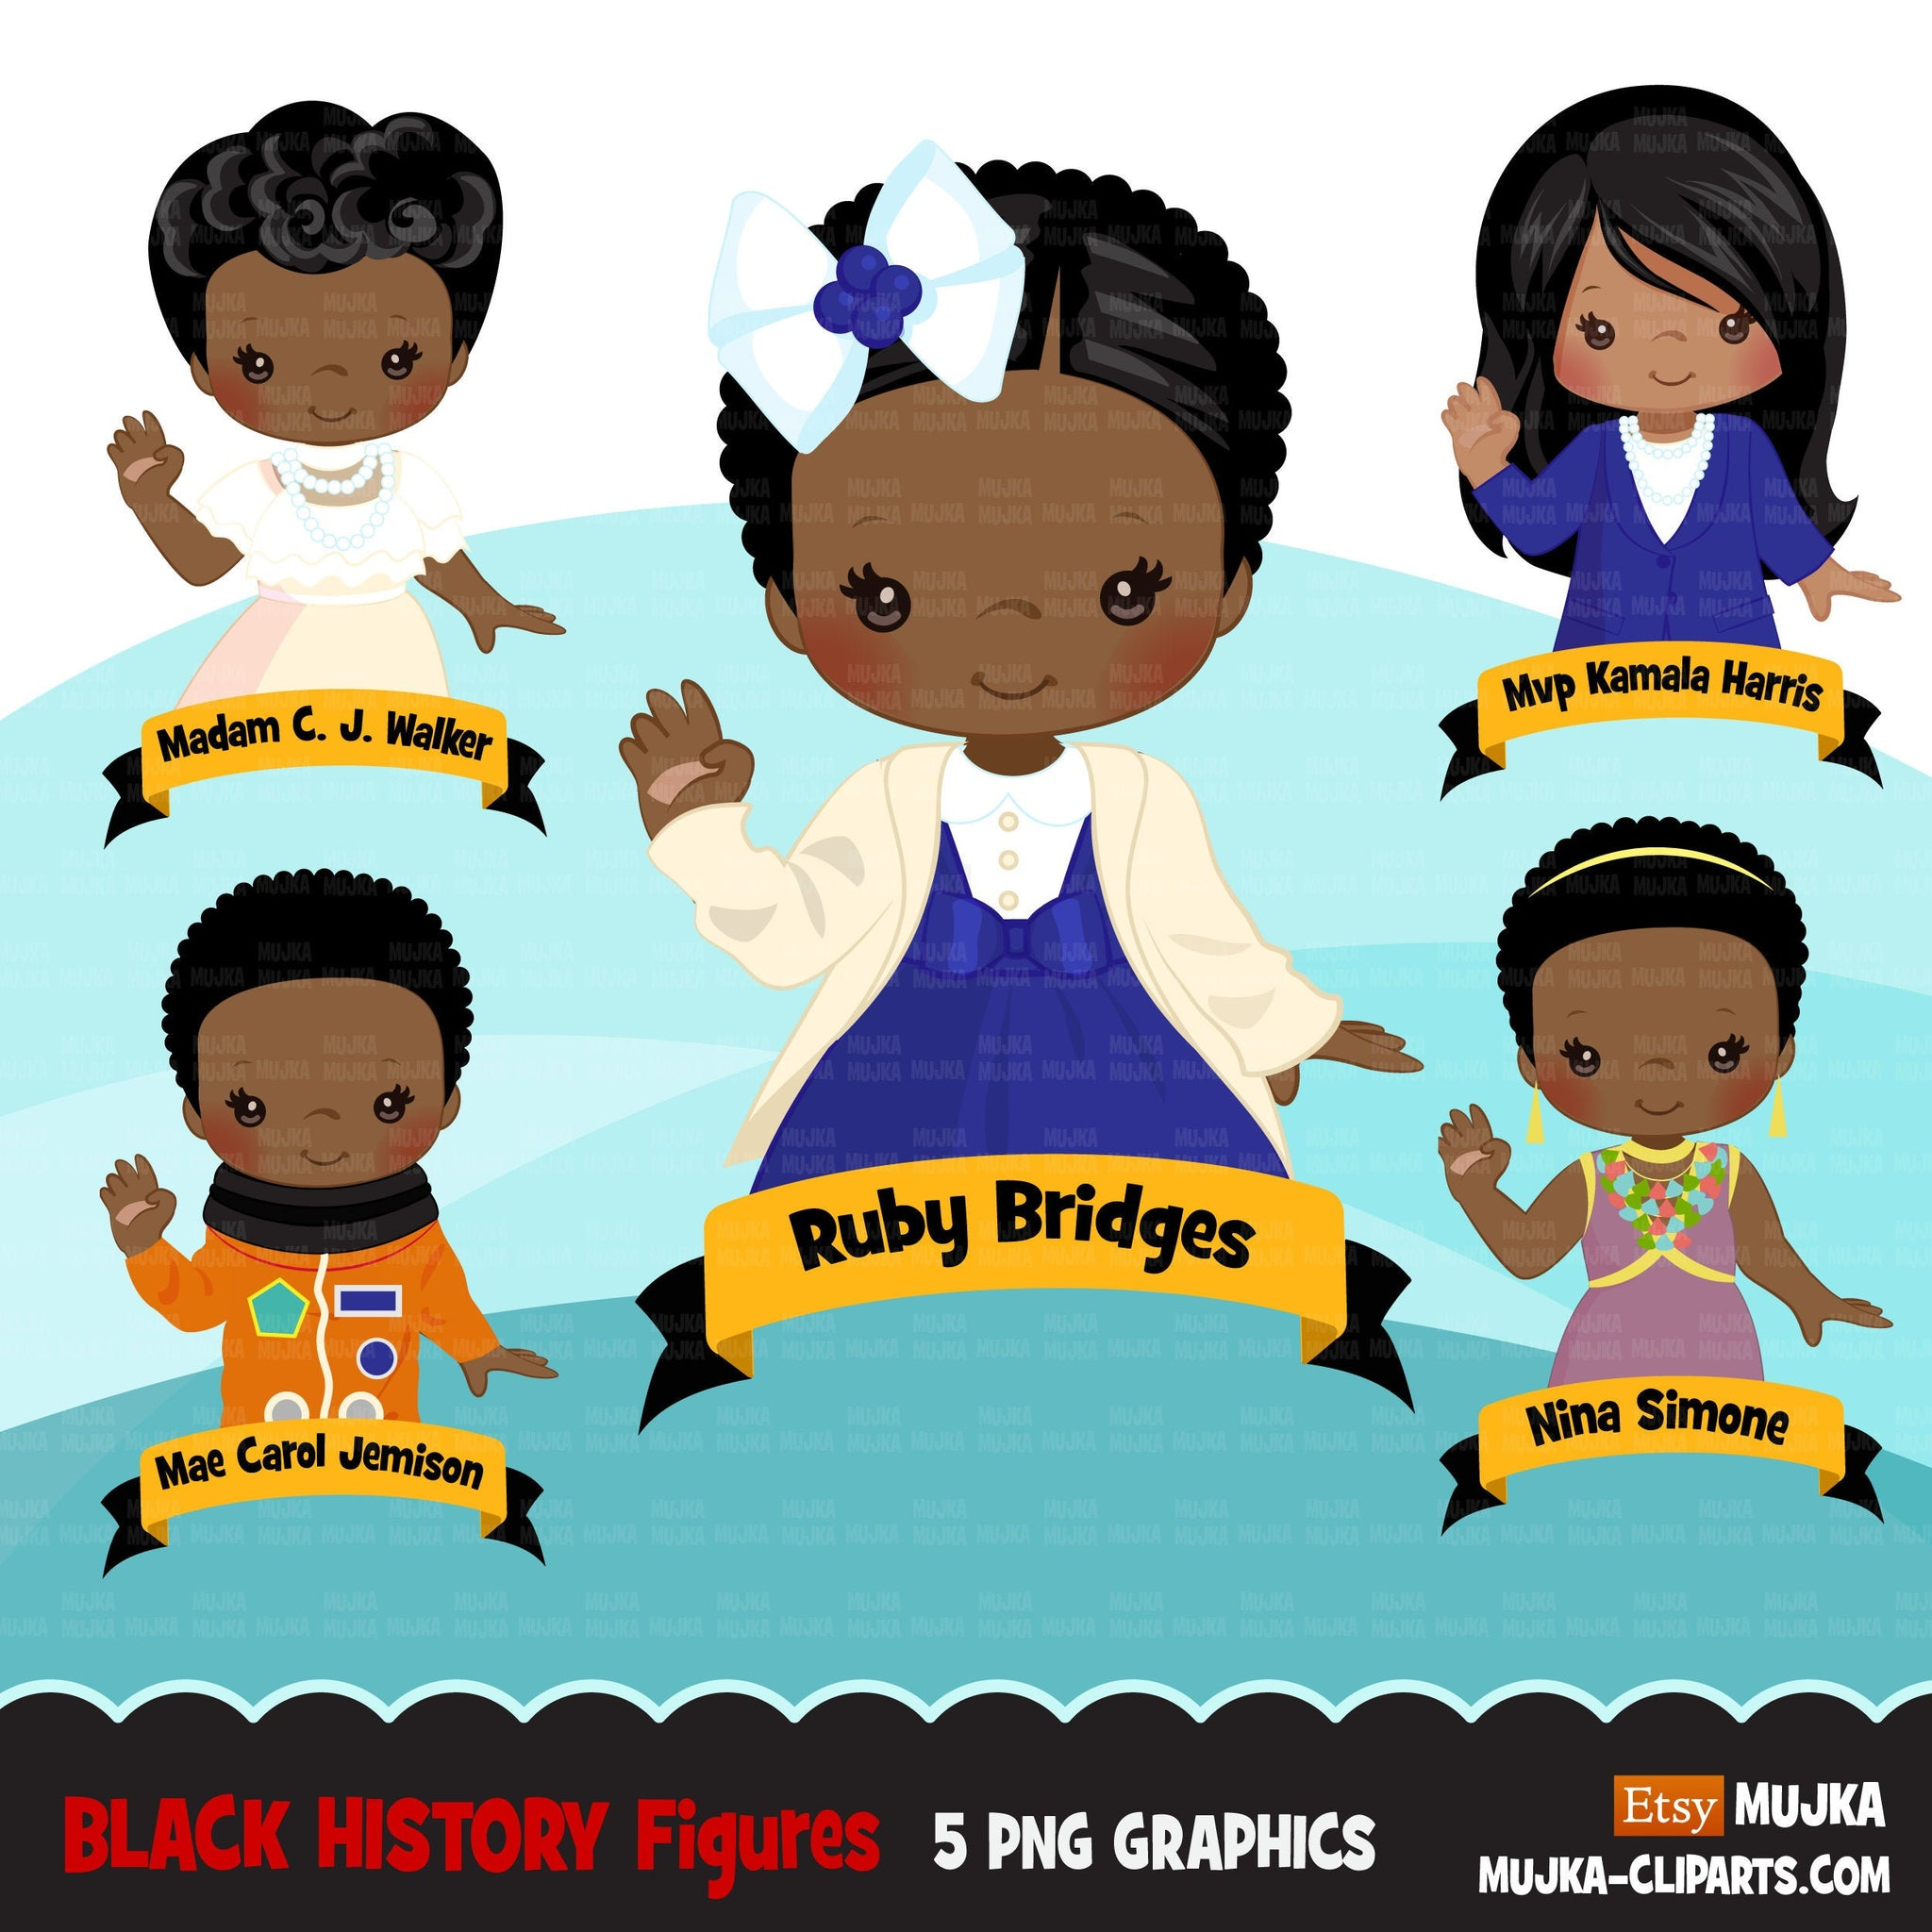 Black history clipart, black history female figures Kamala Harris, Nina Simone, Ruby Bridges, Mae Jemison, Madam c j walker  clip art PNG